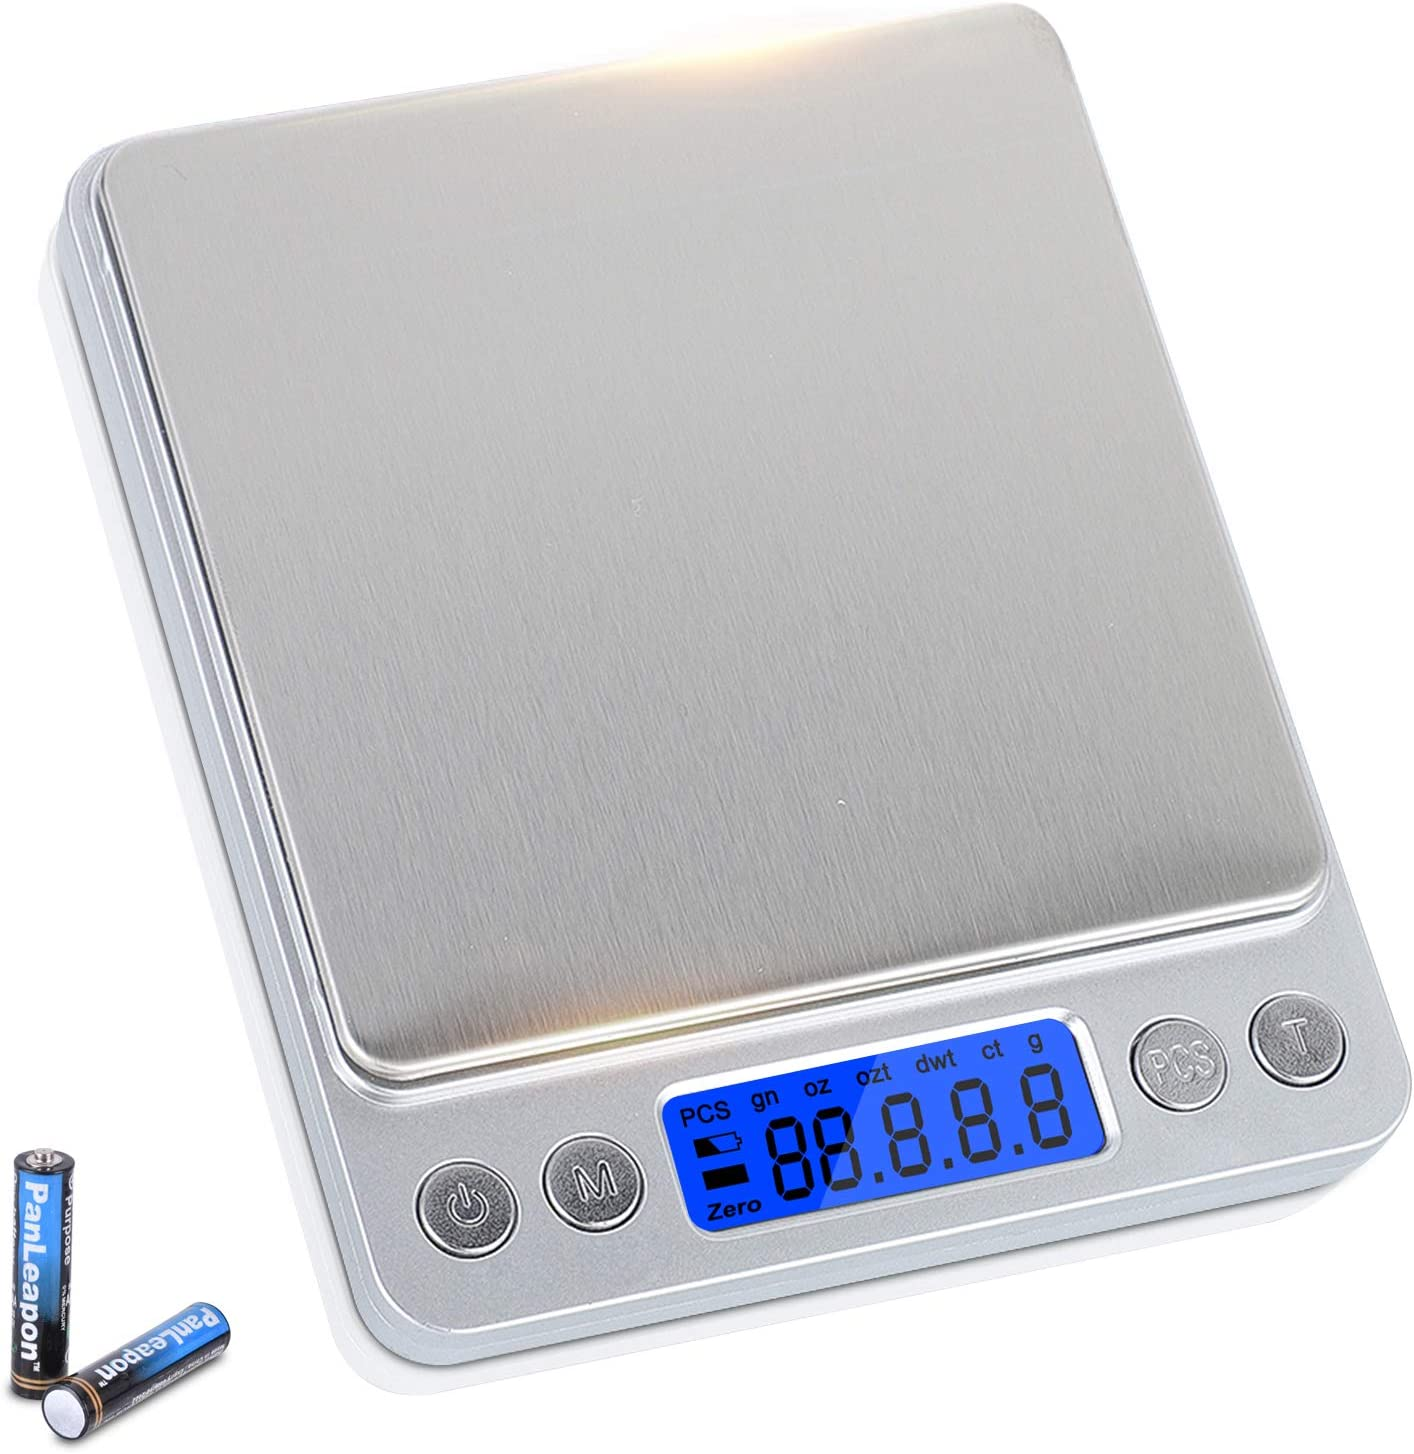 Hogreat Kitchen Scale 3000g/ 0.1g, Digital Food Scale Weight Grams and Oz with Stainless Steel Surface 6 Units Conversion, Back-Lit LCD Display, Gram Scales for Jewlery, Coffee, Dieting,Cooking,Baking